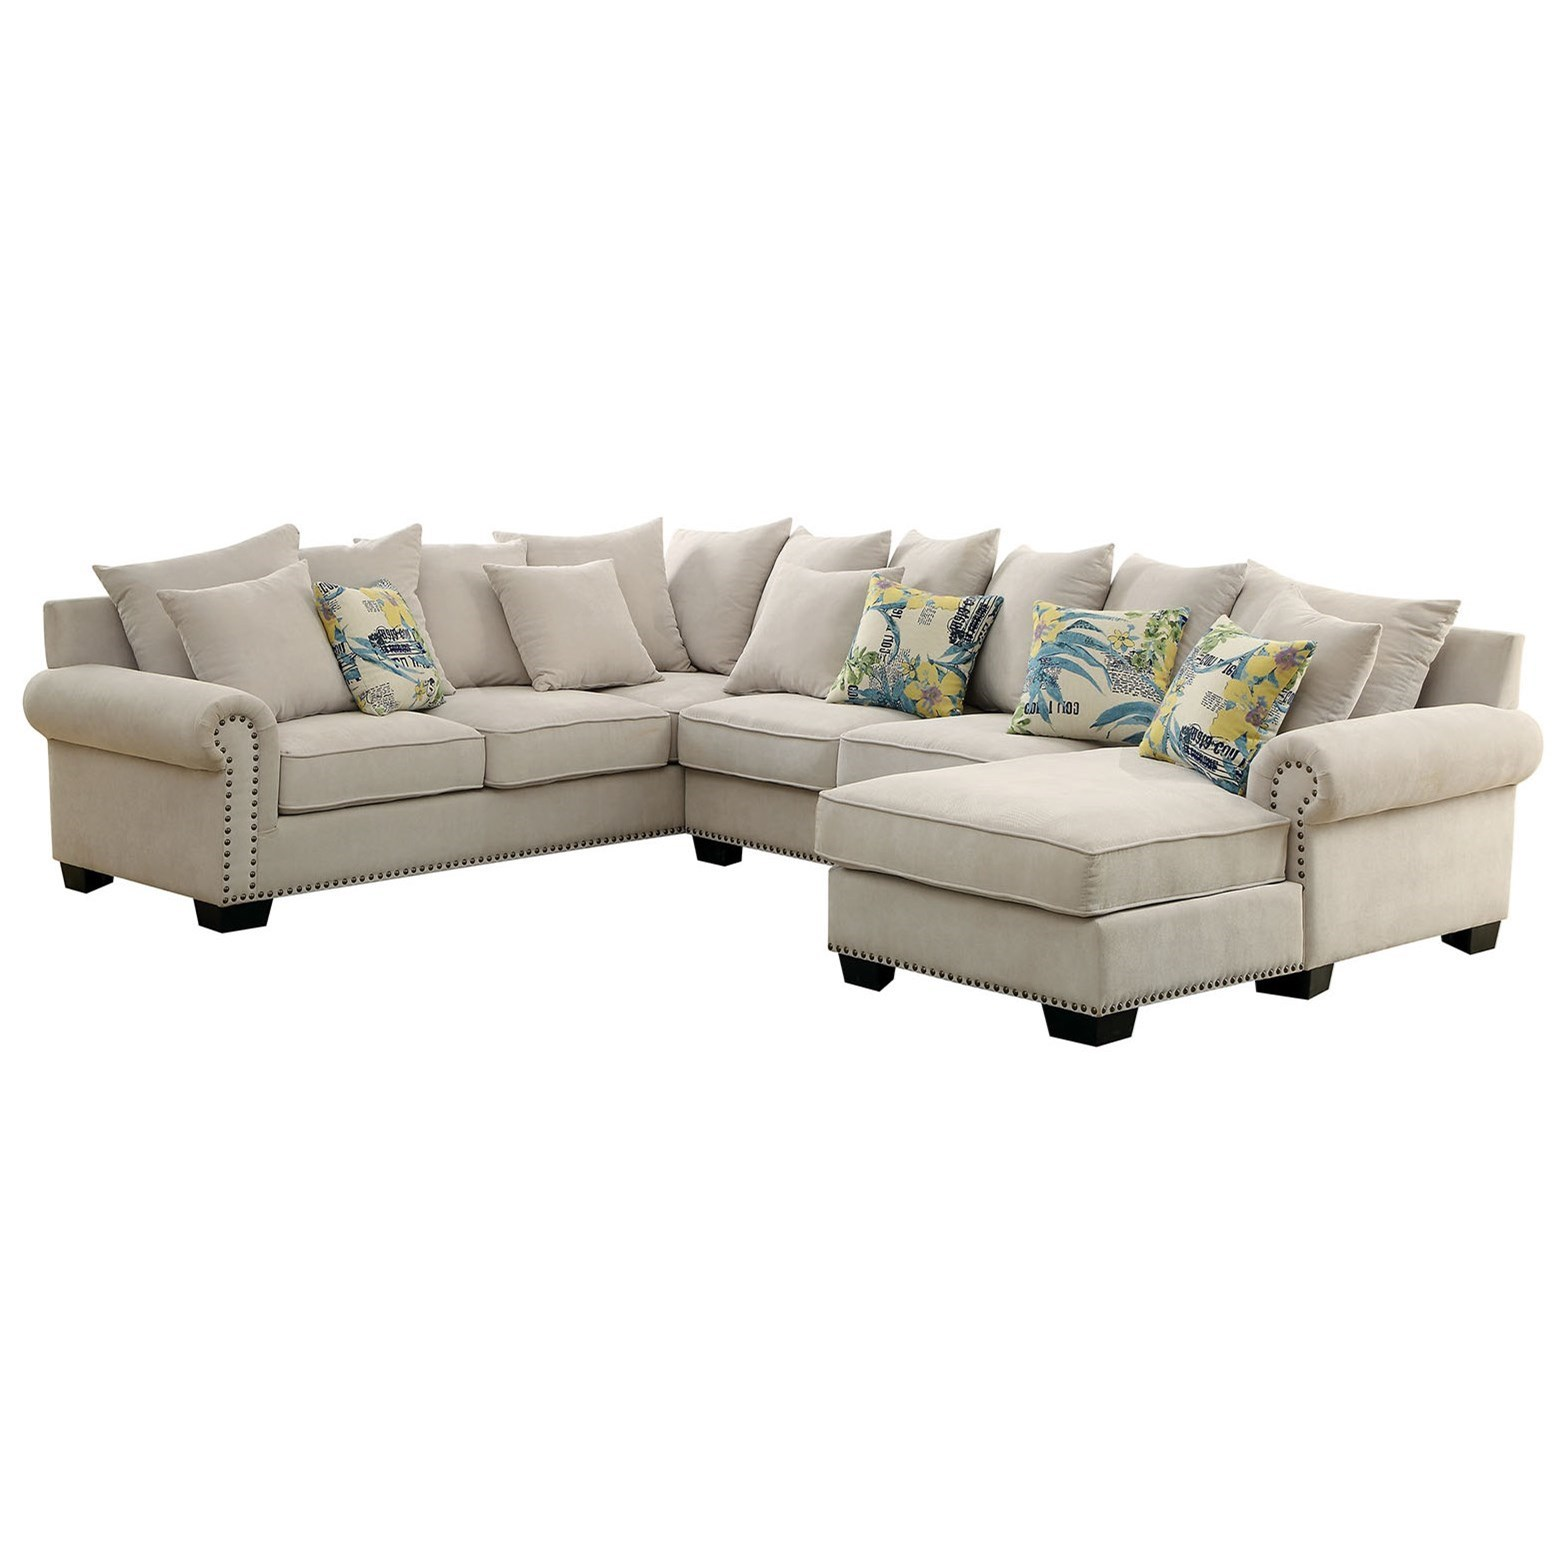 Skyler 3 Piece Sectional Sofa with Scattered Back Pillows and Nailhead Trim  by Furniture of America at Rooms for Less